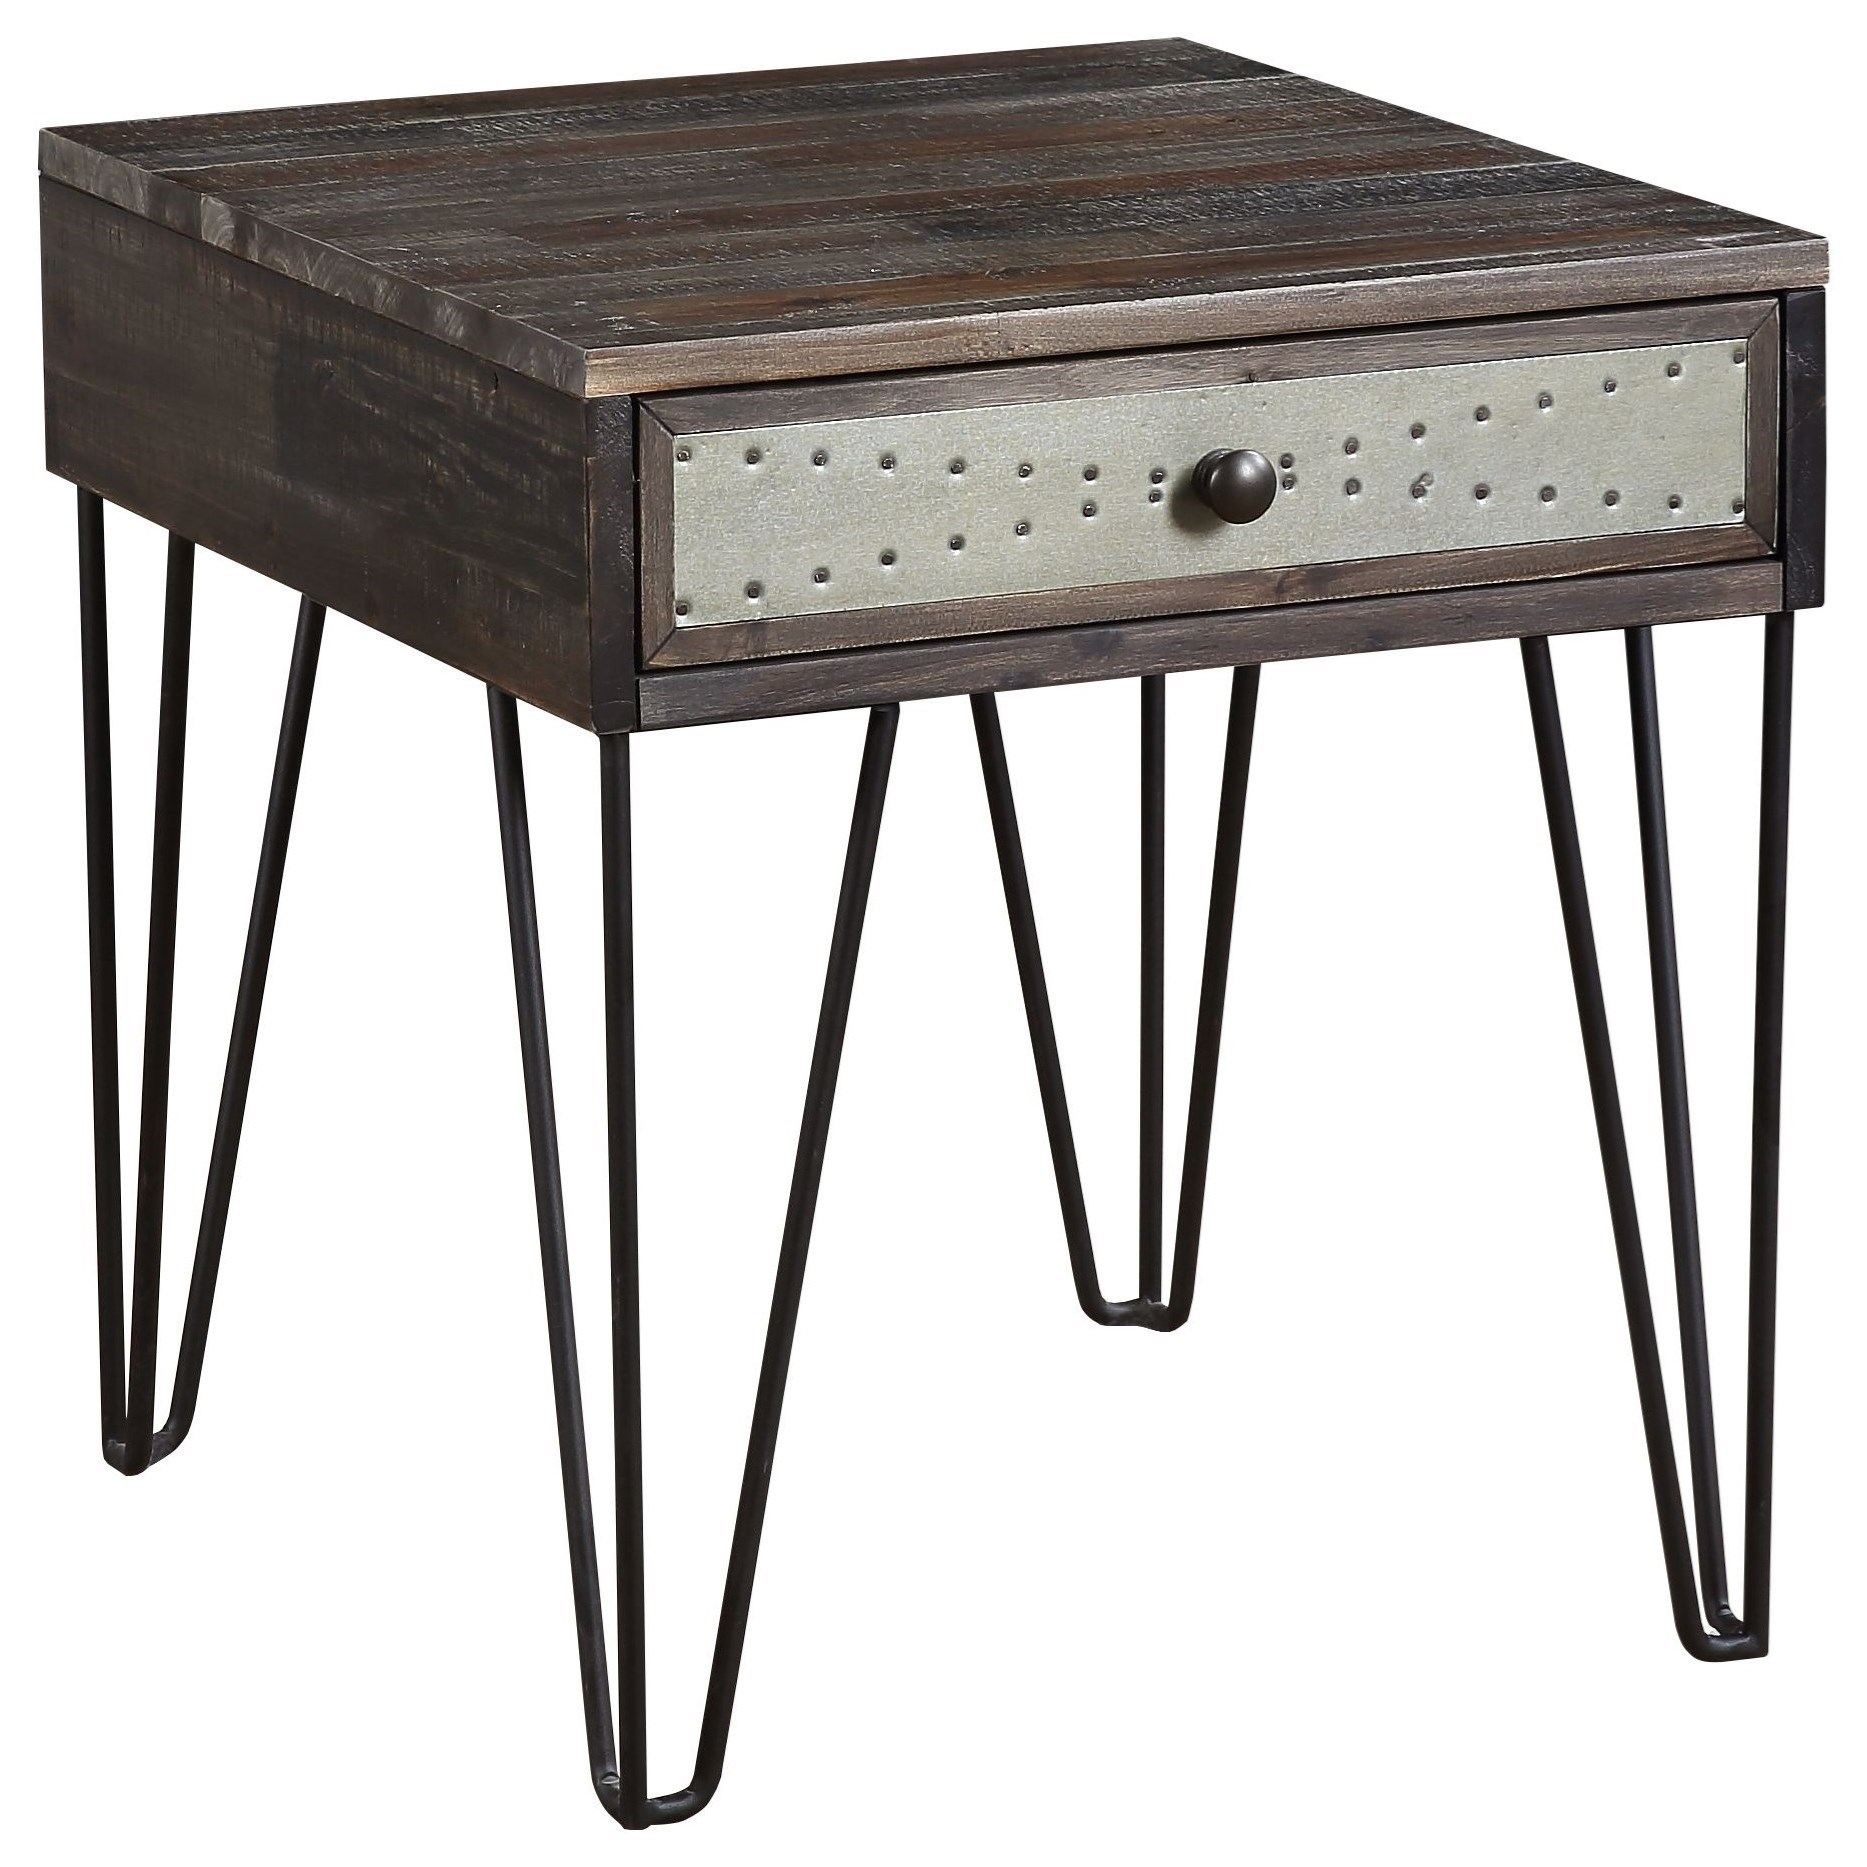 Aspen Court Vintage 1-Drawer End Table by Coast to Coast Imports at Value City Furniture